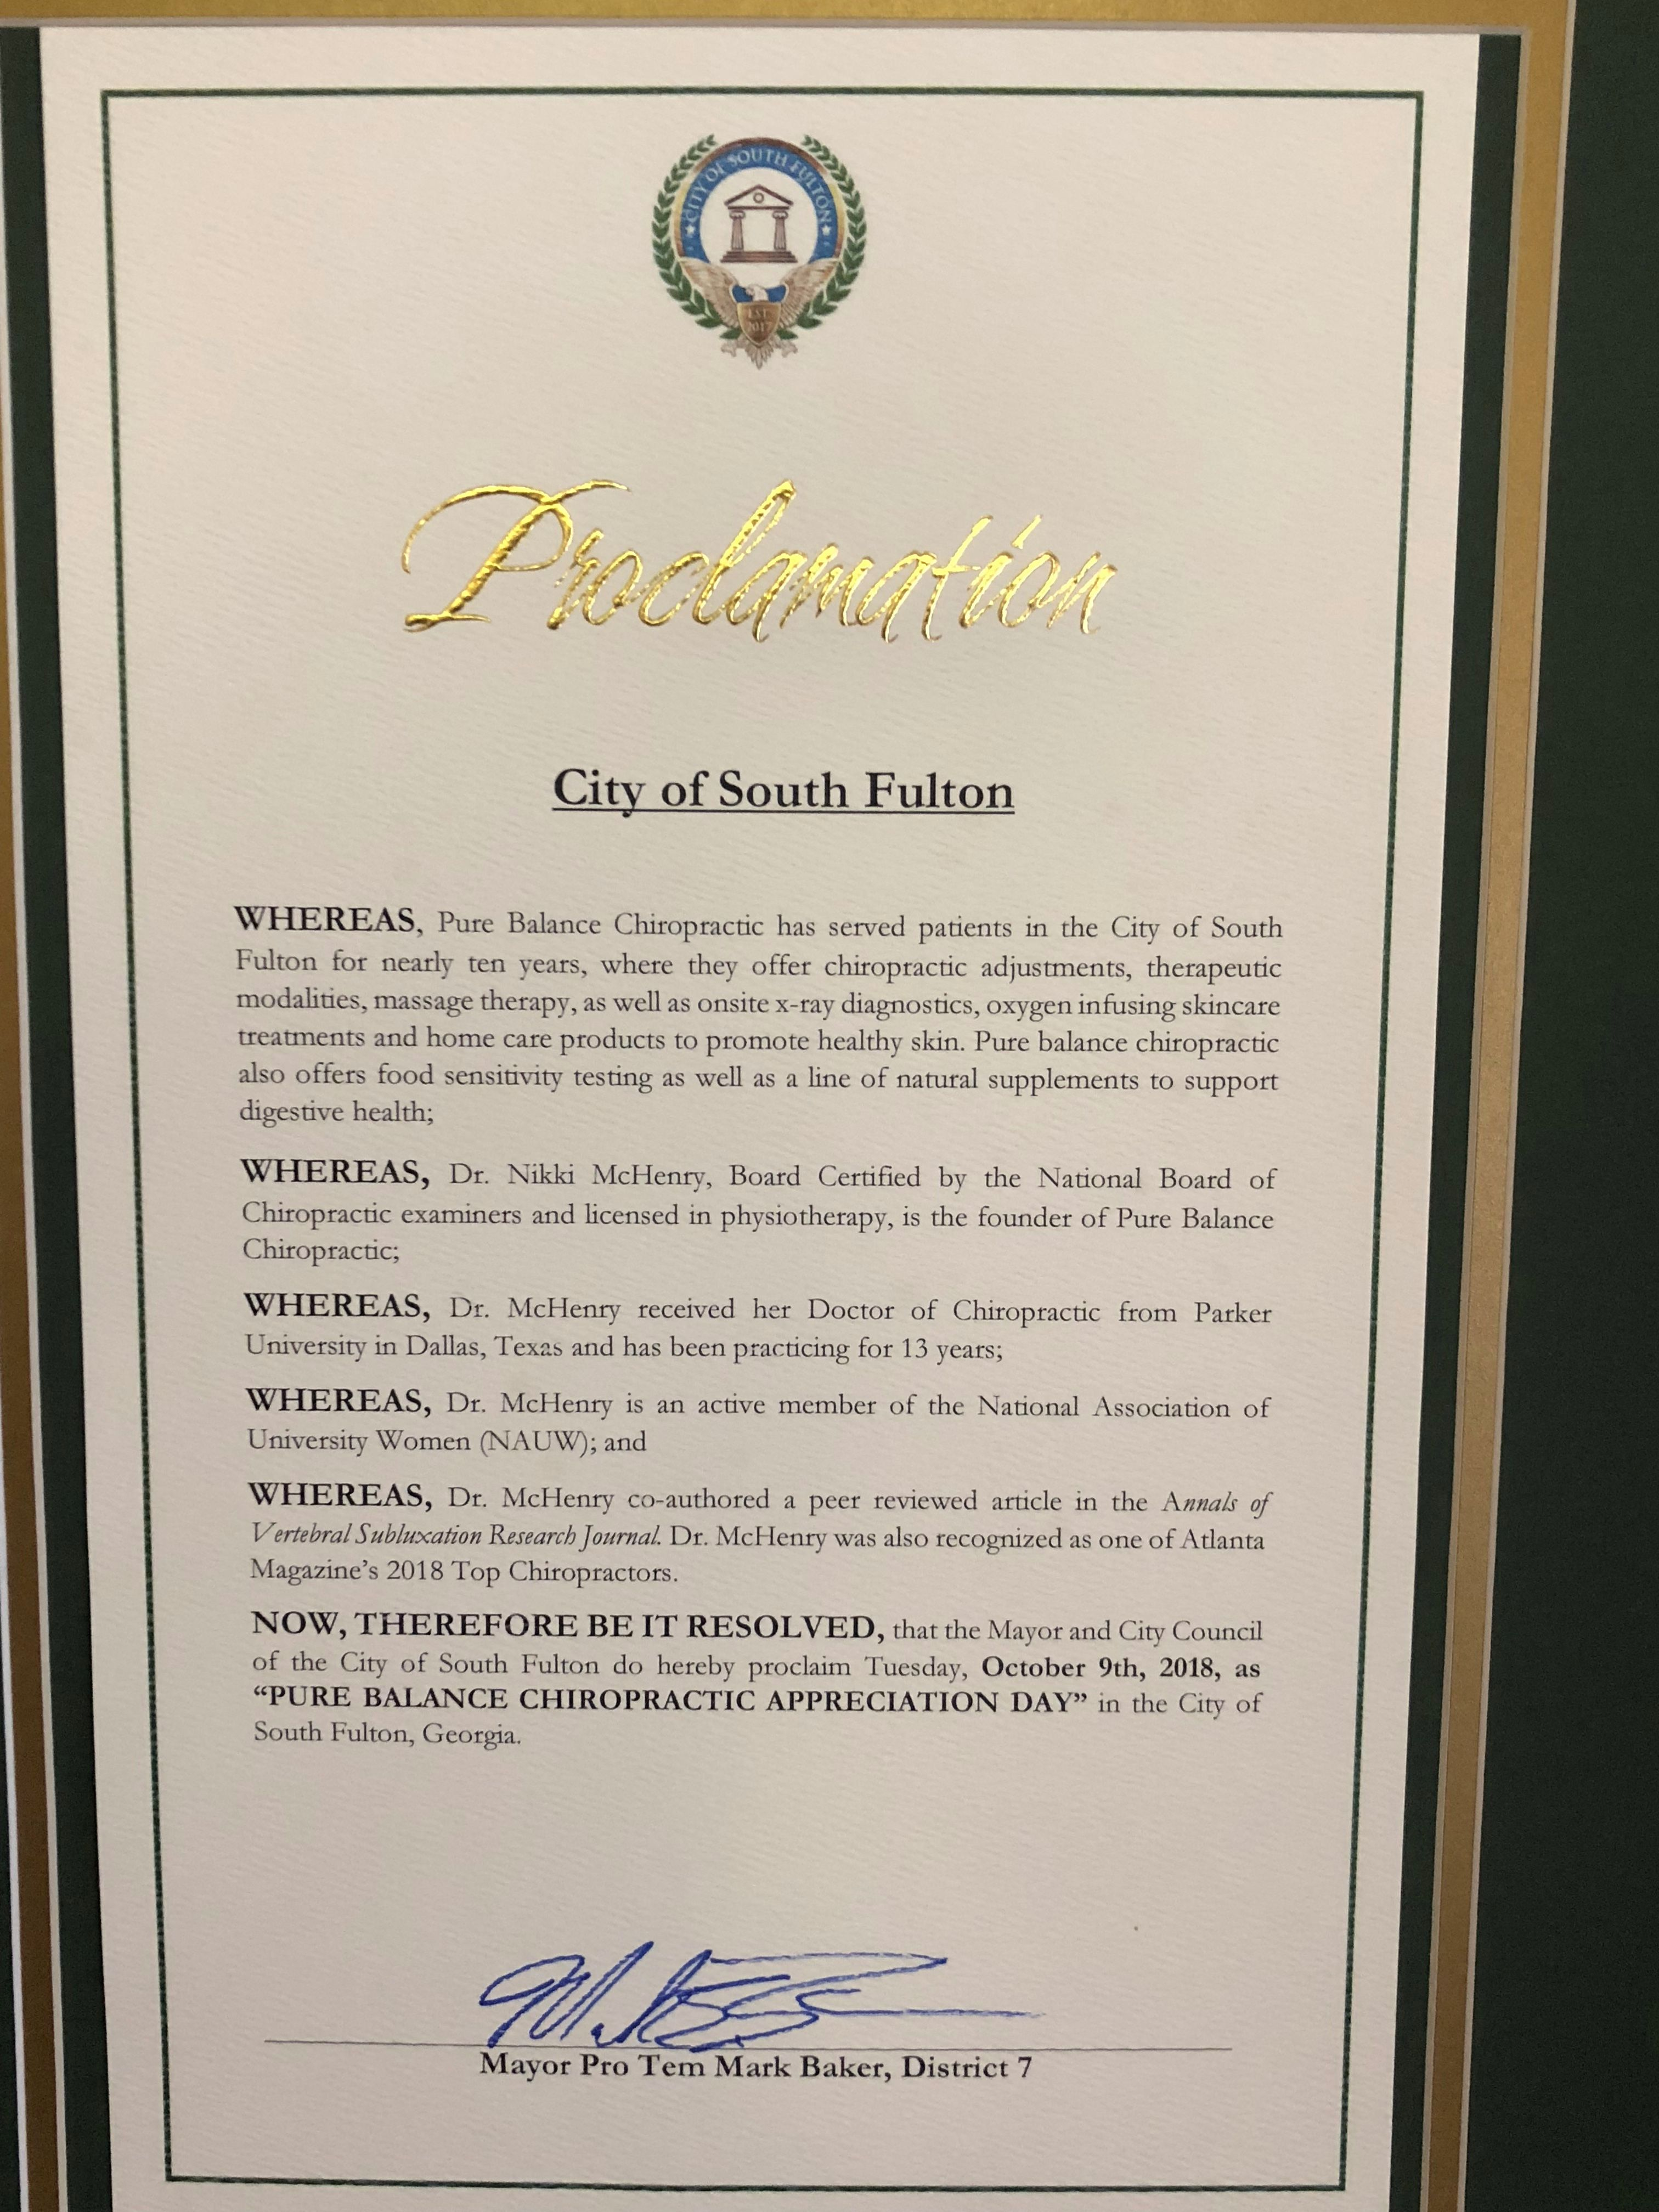 Dr. Nikki McHenry Proclamation